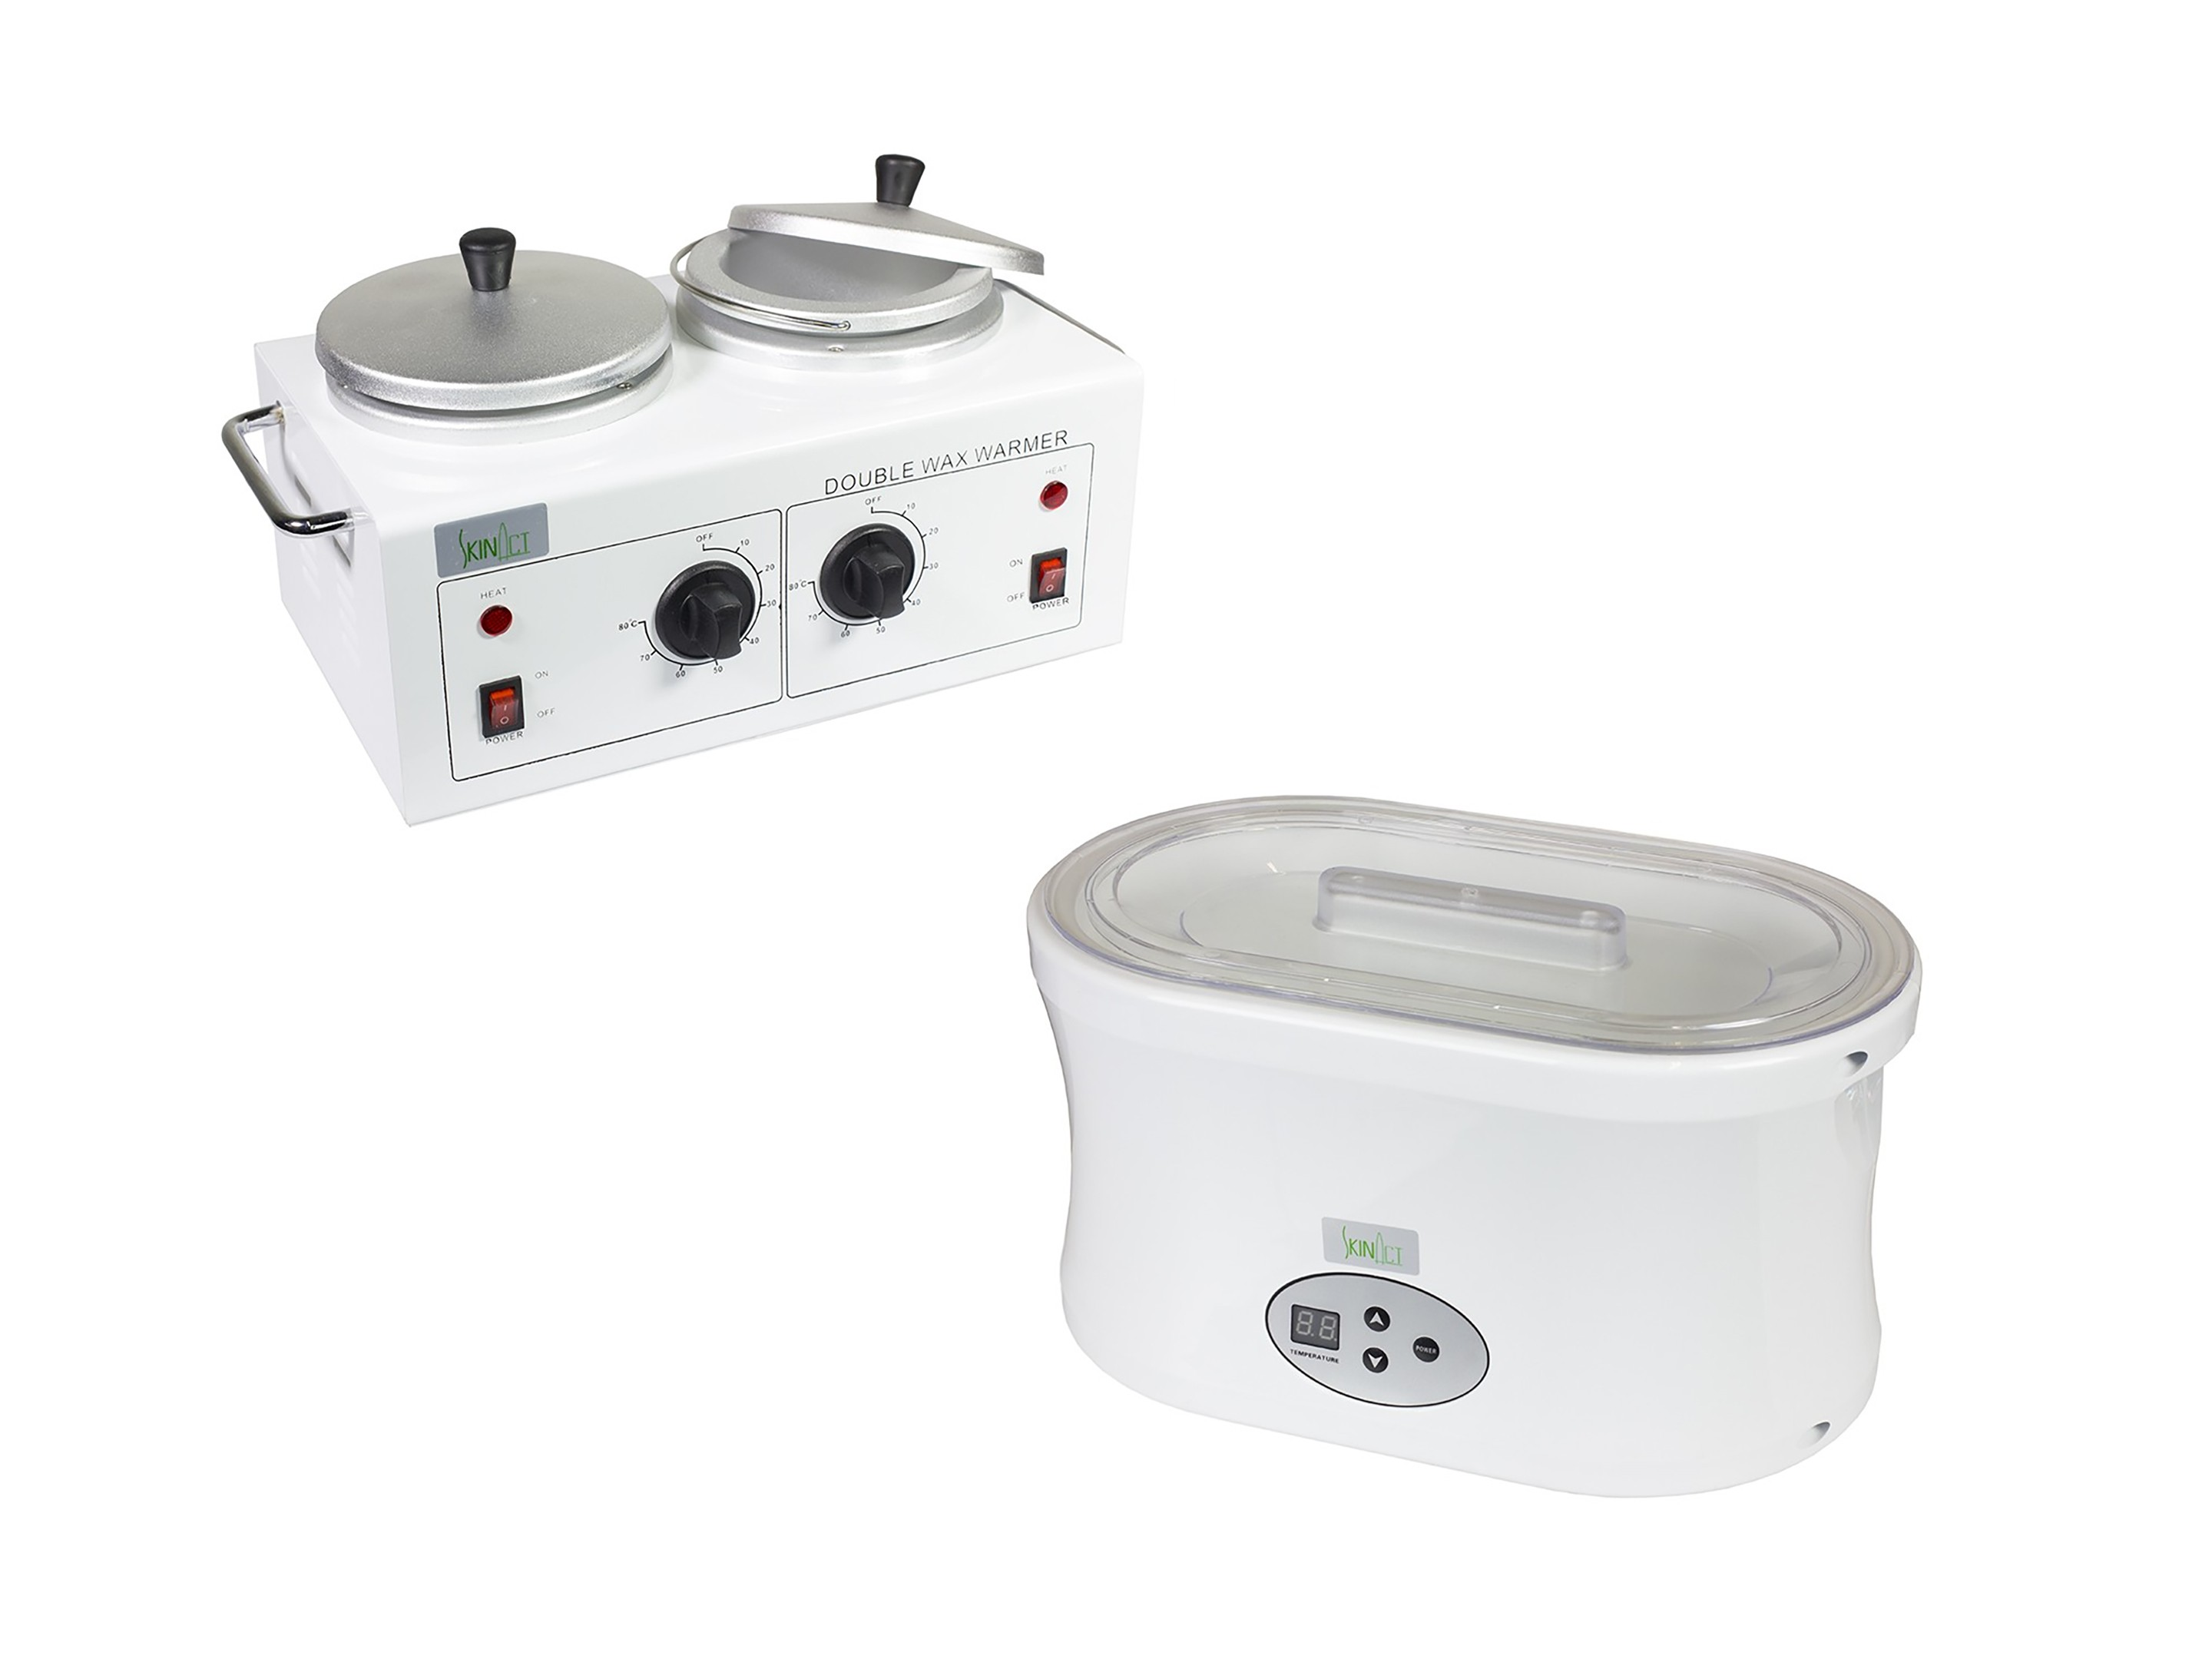 Spa wax warmer equipment, system, machine